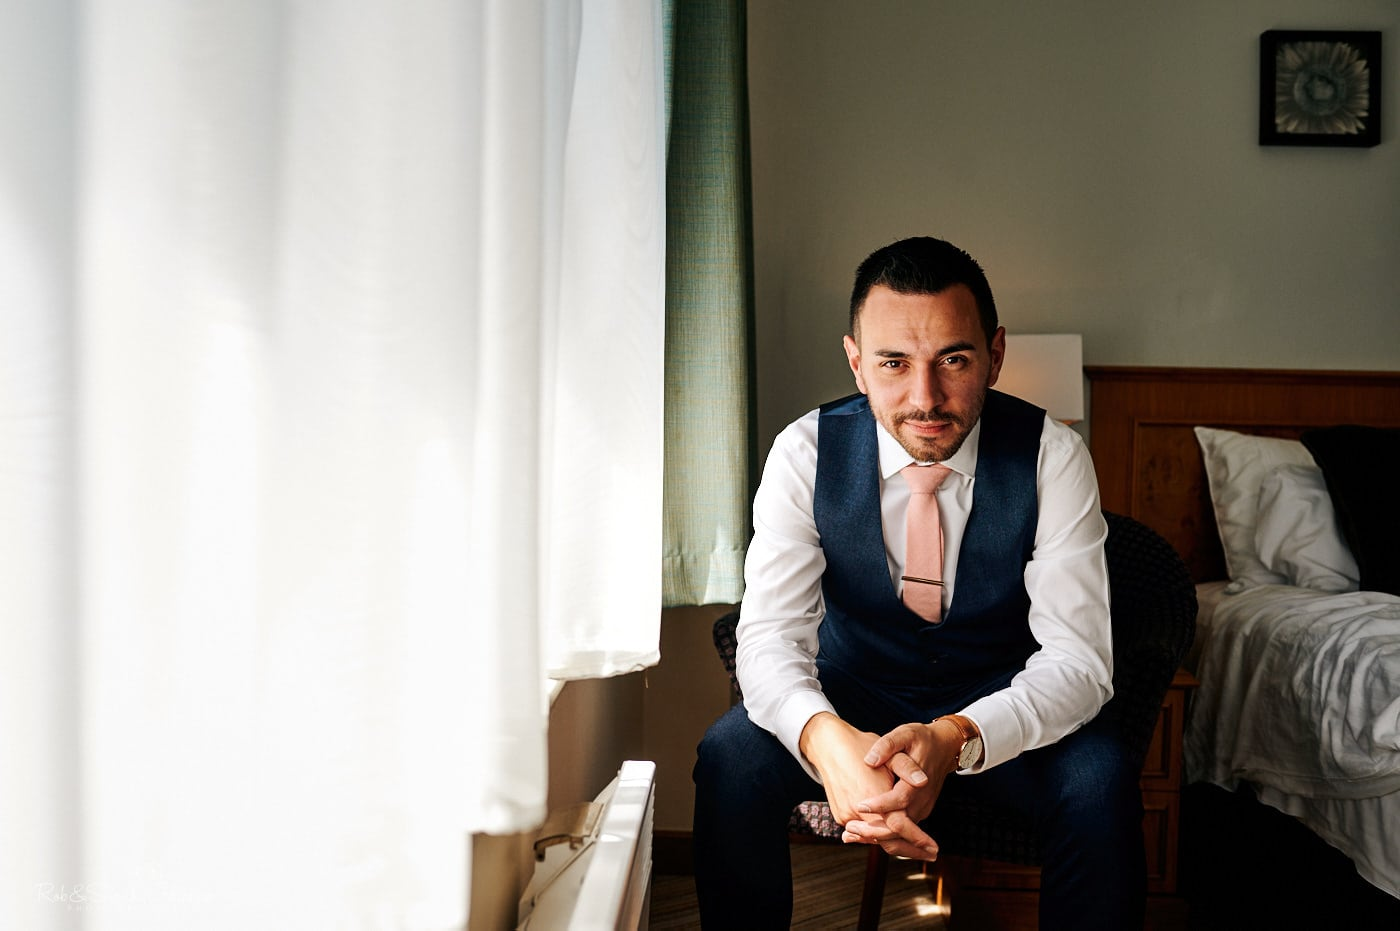 Portrait of groom sitting in hotel chair